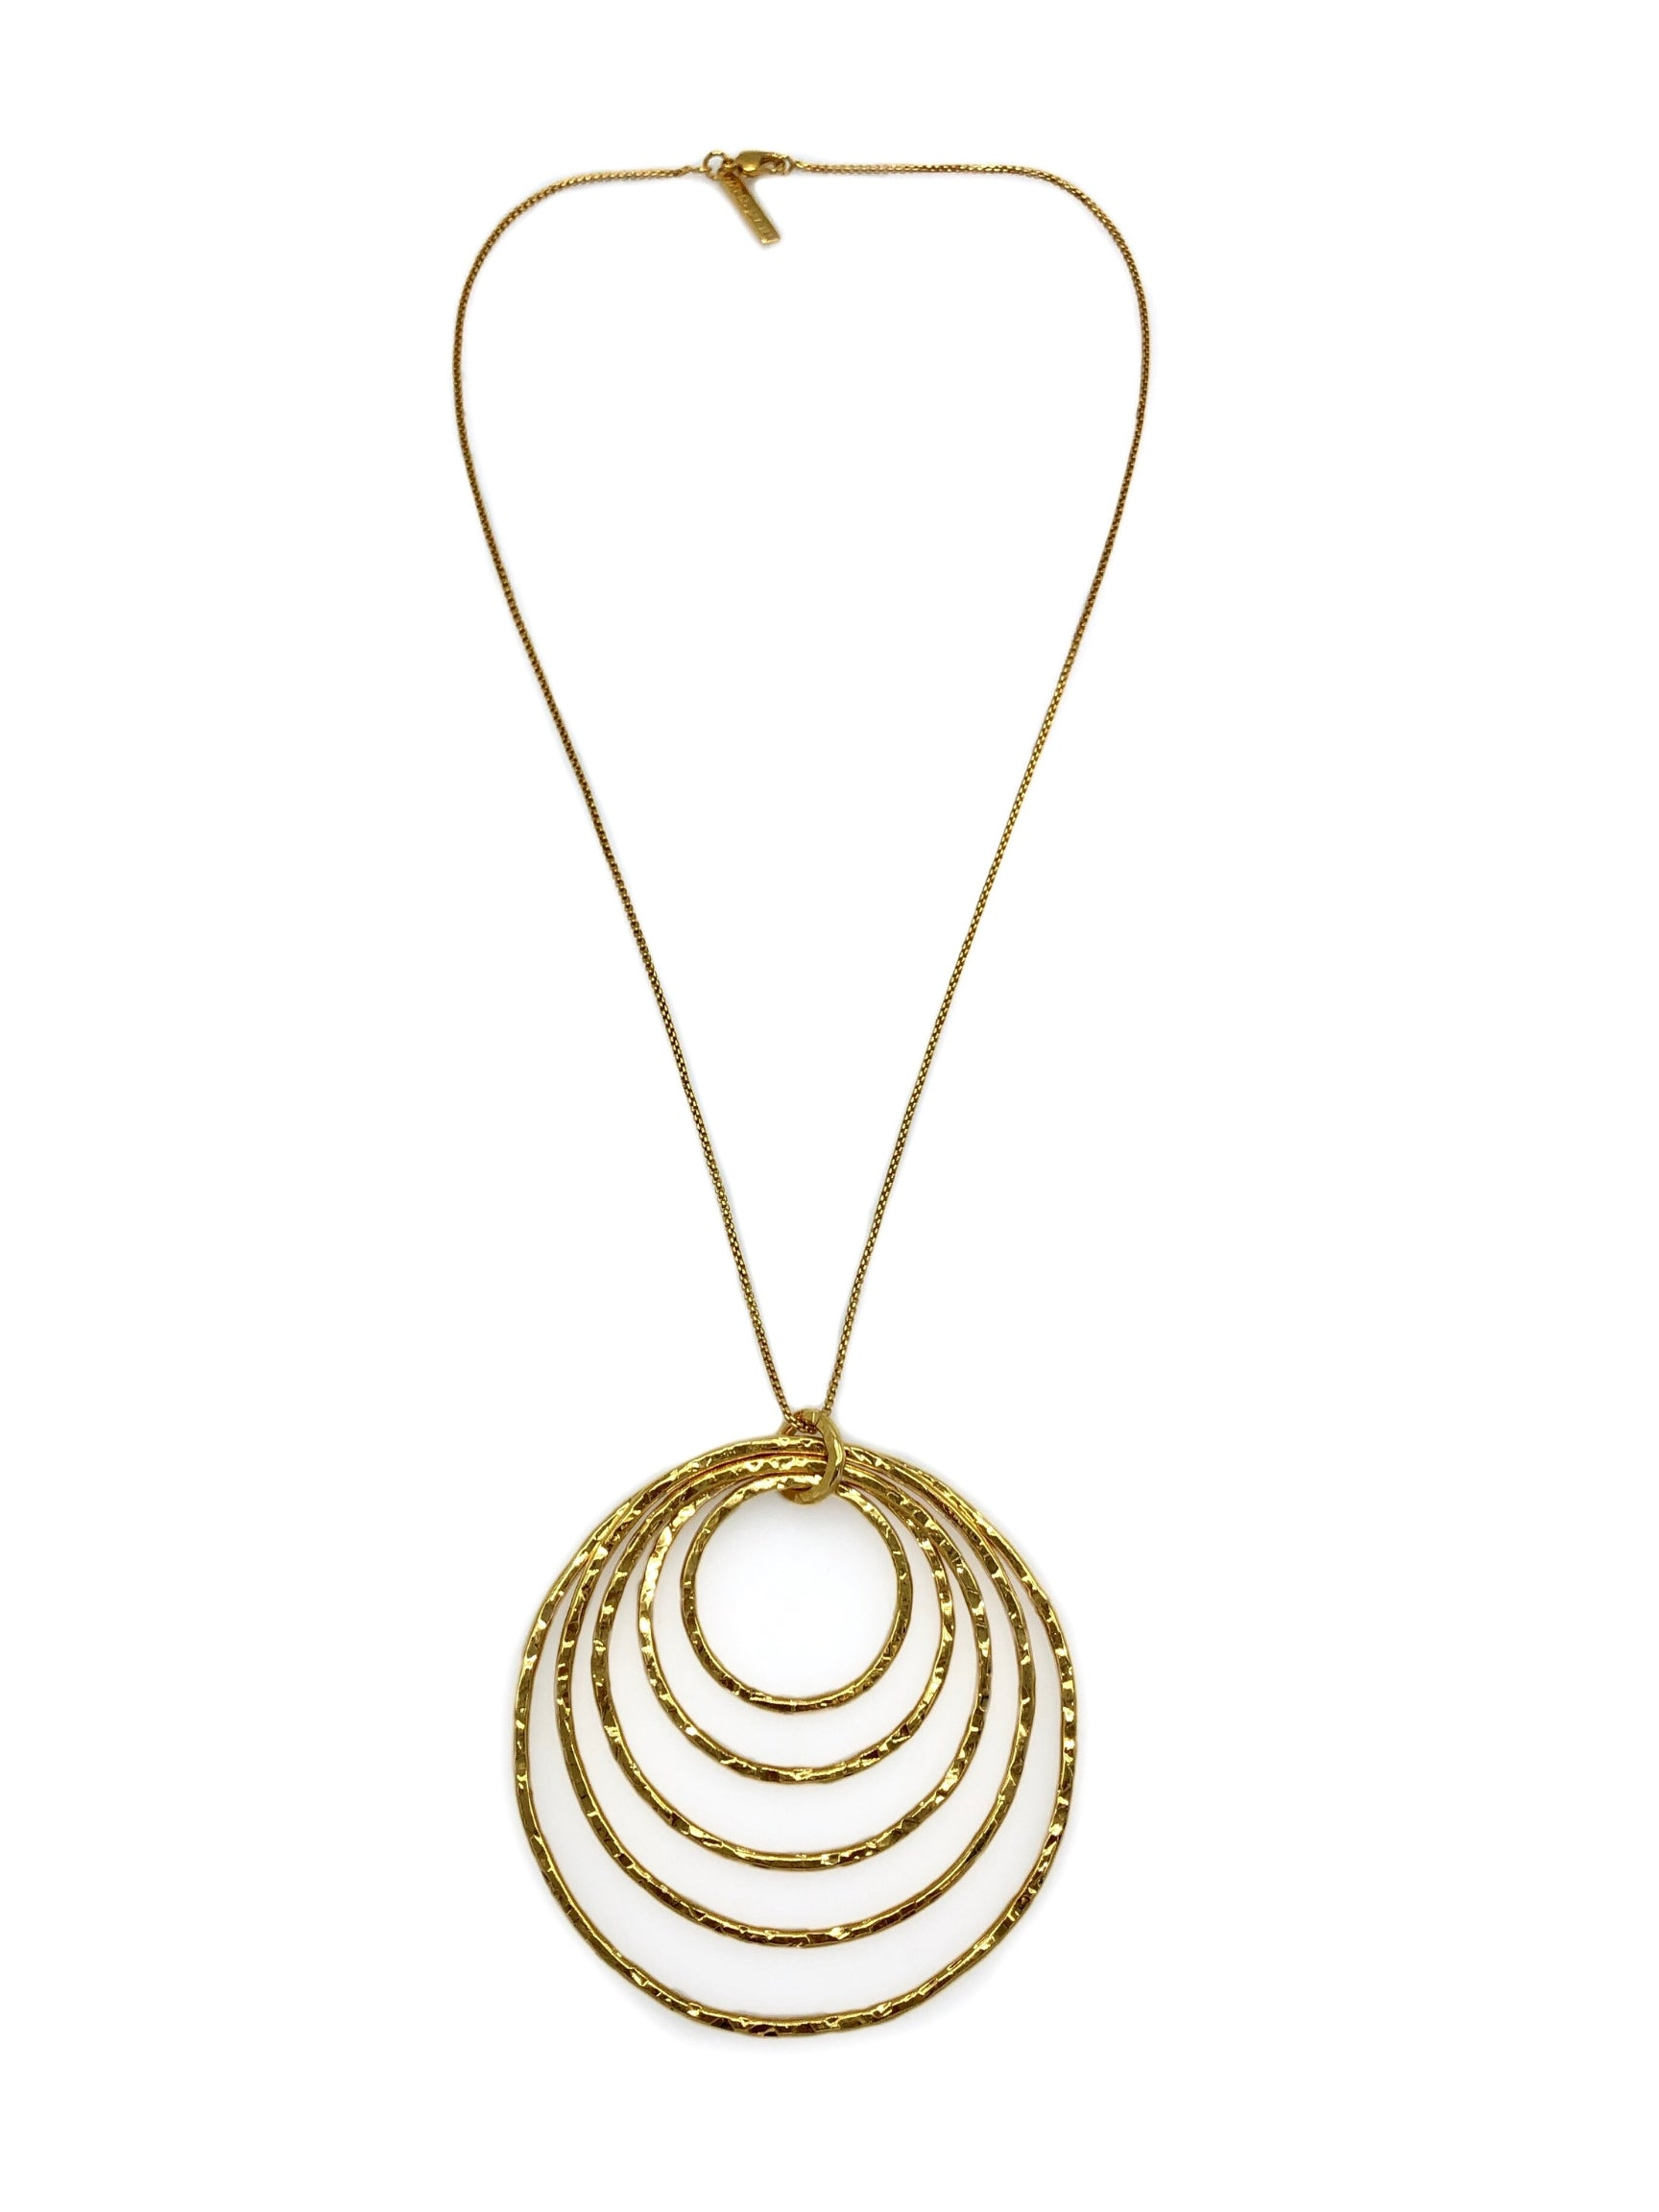 Ripple Textured Gold Pendant Necklace-Necklaces-JAREDJAMIN Jewelry Online-JARED JAMIN